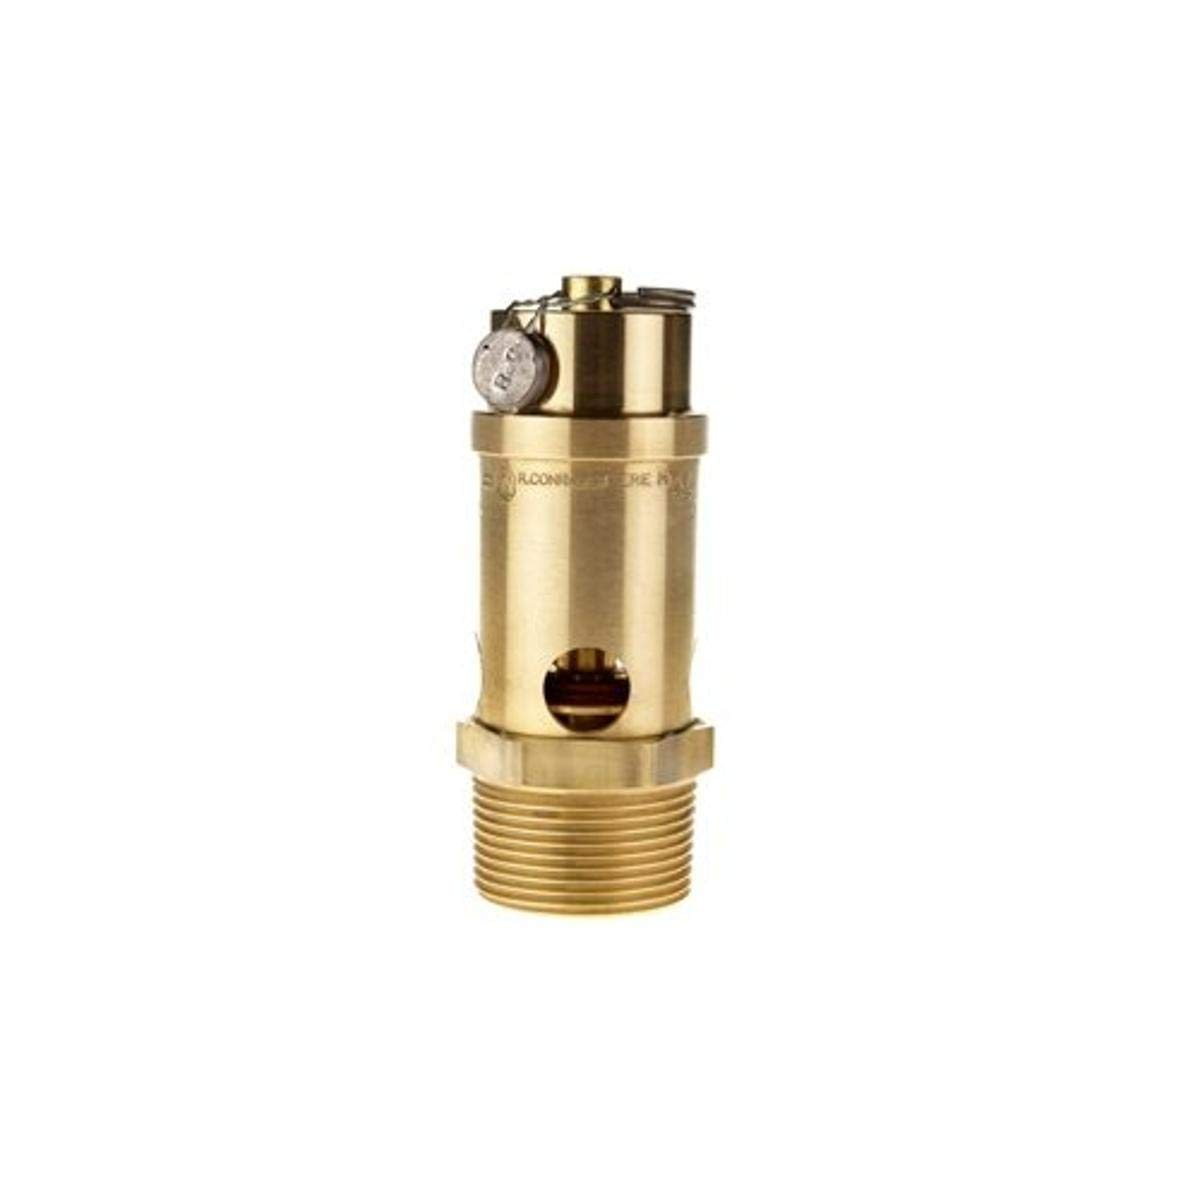 Midwest Control SRV765-10-220 ASME Soft 220 Popular product Tulsa Mall Safety p Valve Seat